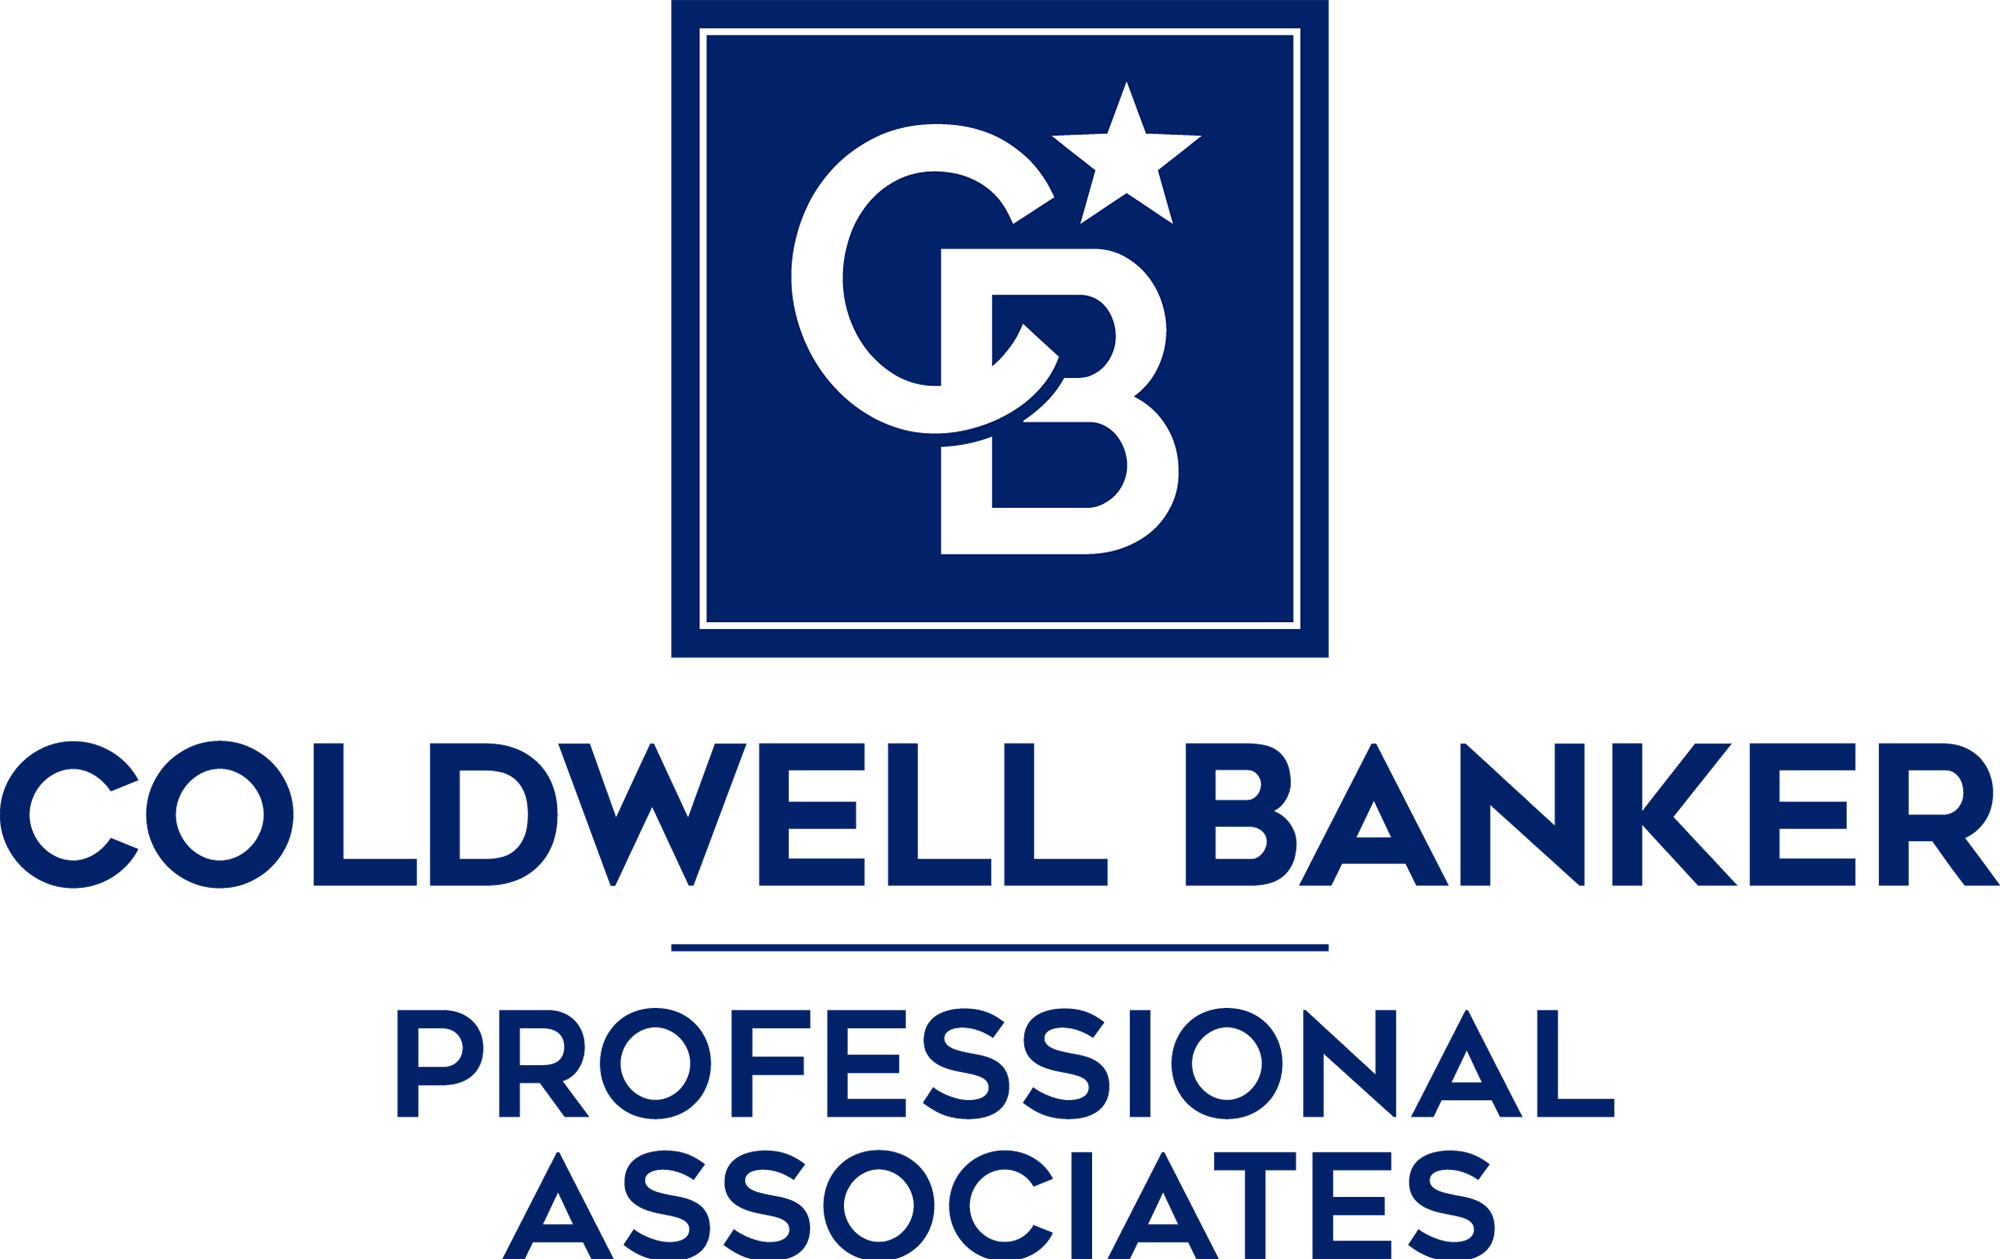 Deb Preston - Coldwell Banker Professional Associates Logo